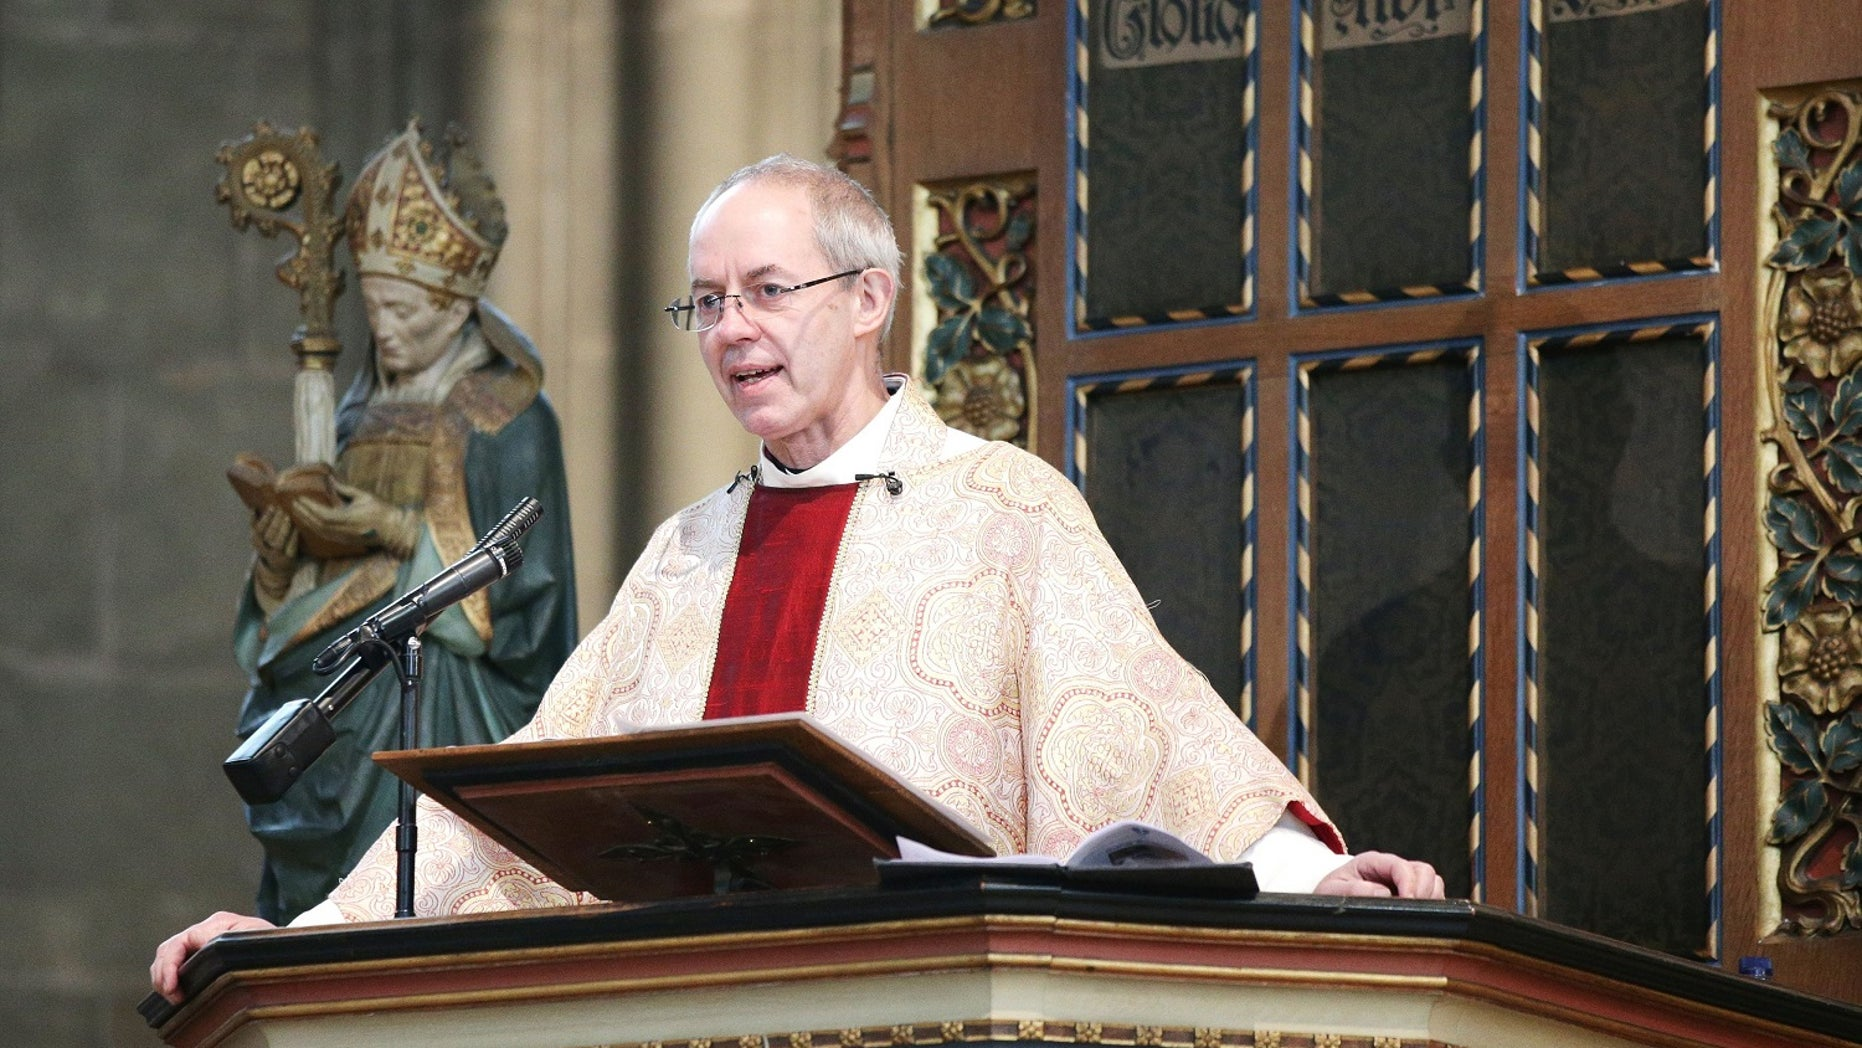 The Archbishop of Canterbury the Most Reverend Justin Welby delivers his Christmas day Sermon during the Christmas day service at Canterbury Cathedral in Kent. PRESS ASSOCIATION Photo. Picture date: Friday December 25, 2015. See PA story XMAS Archbishop. Photo credit should read: Yui Mok/PA Wire